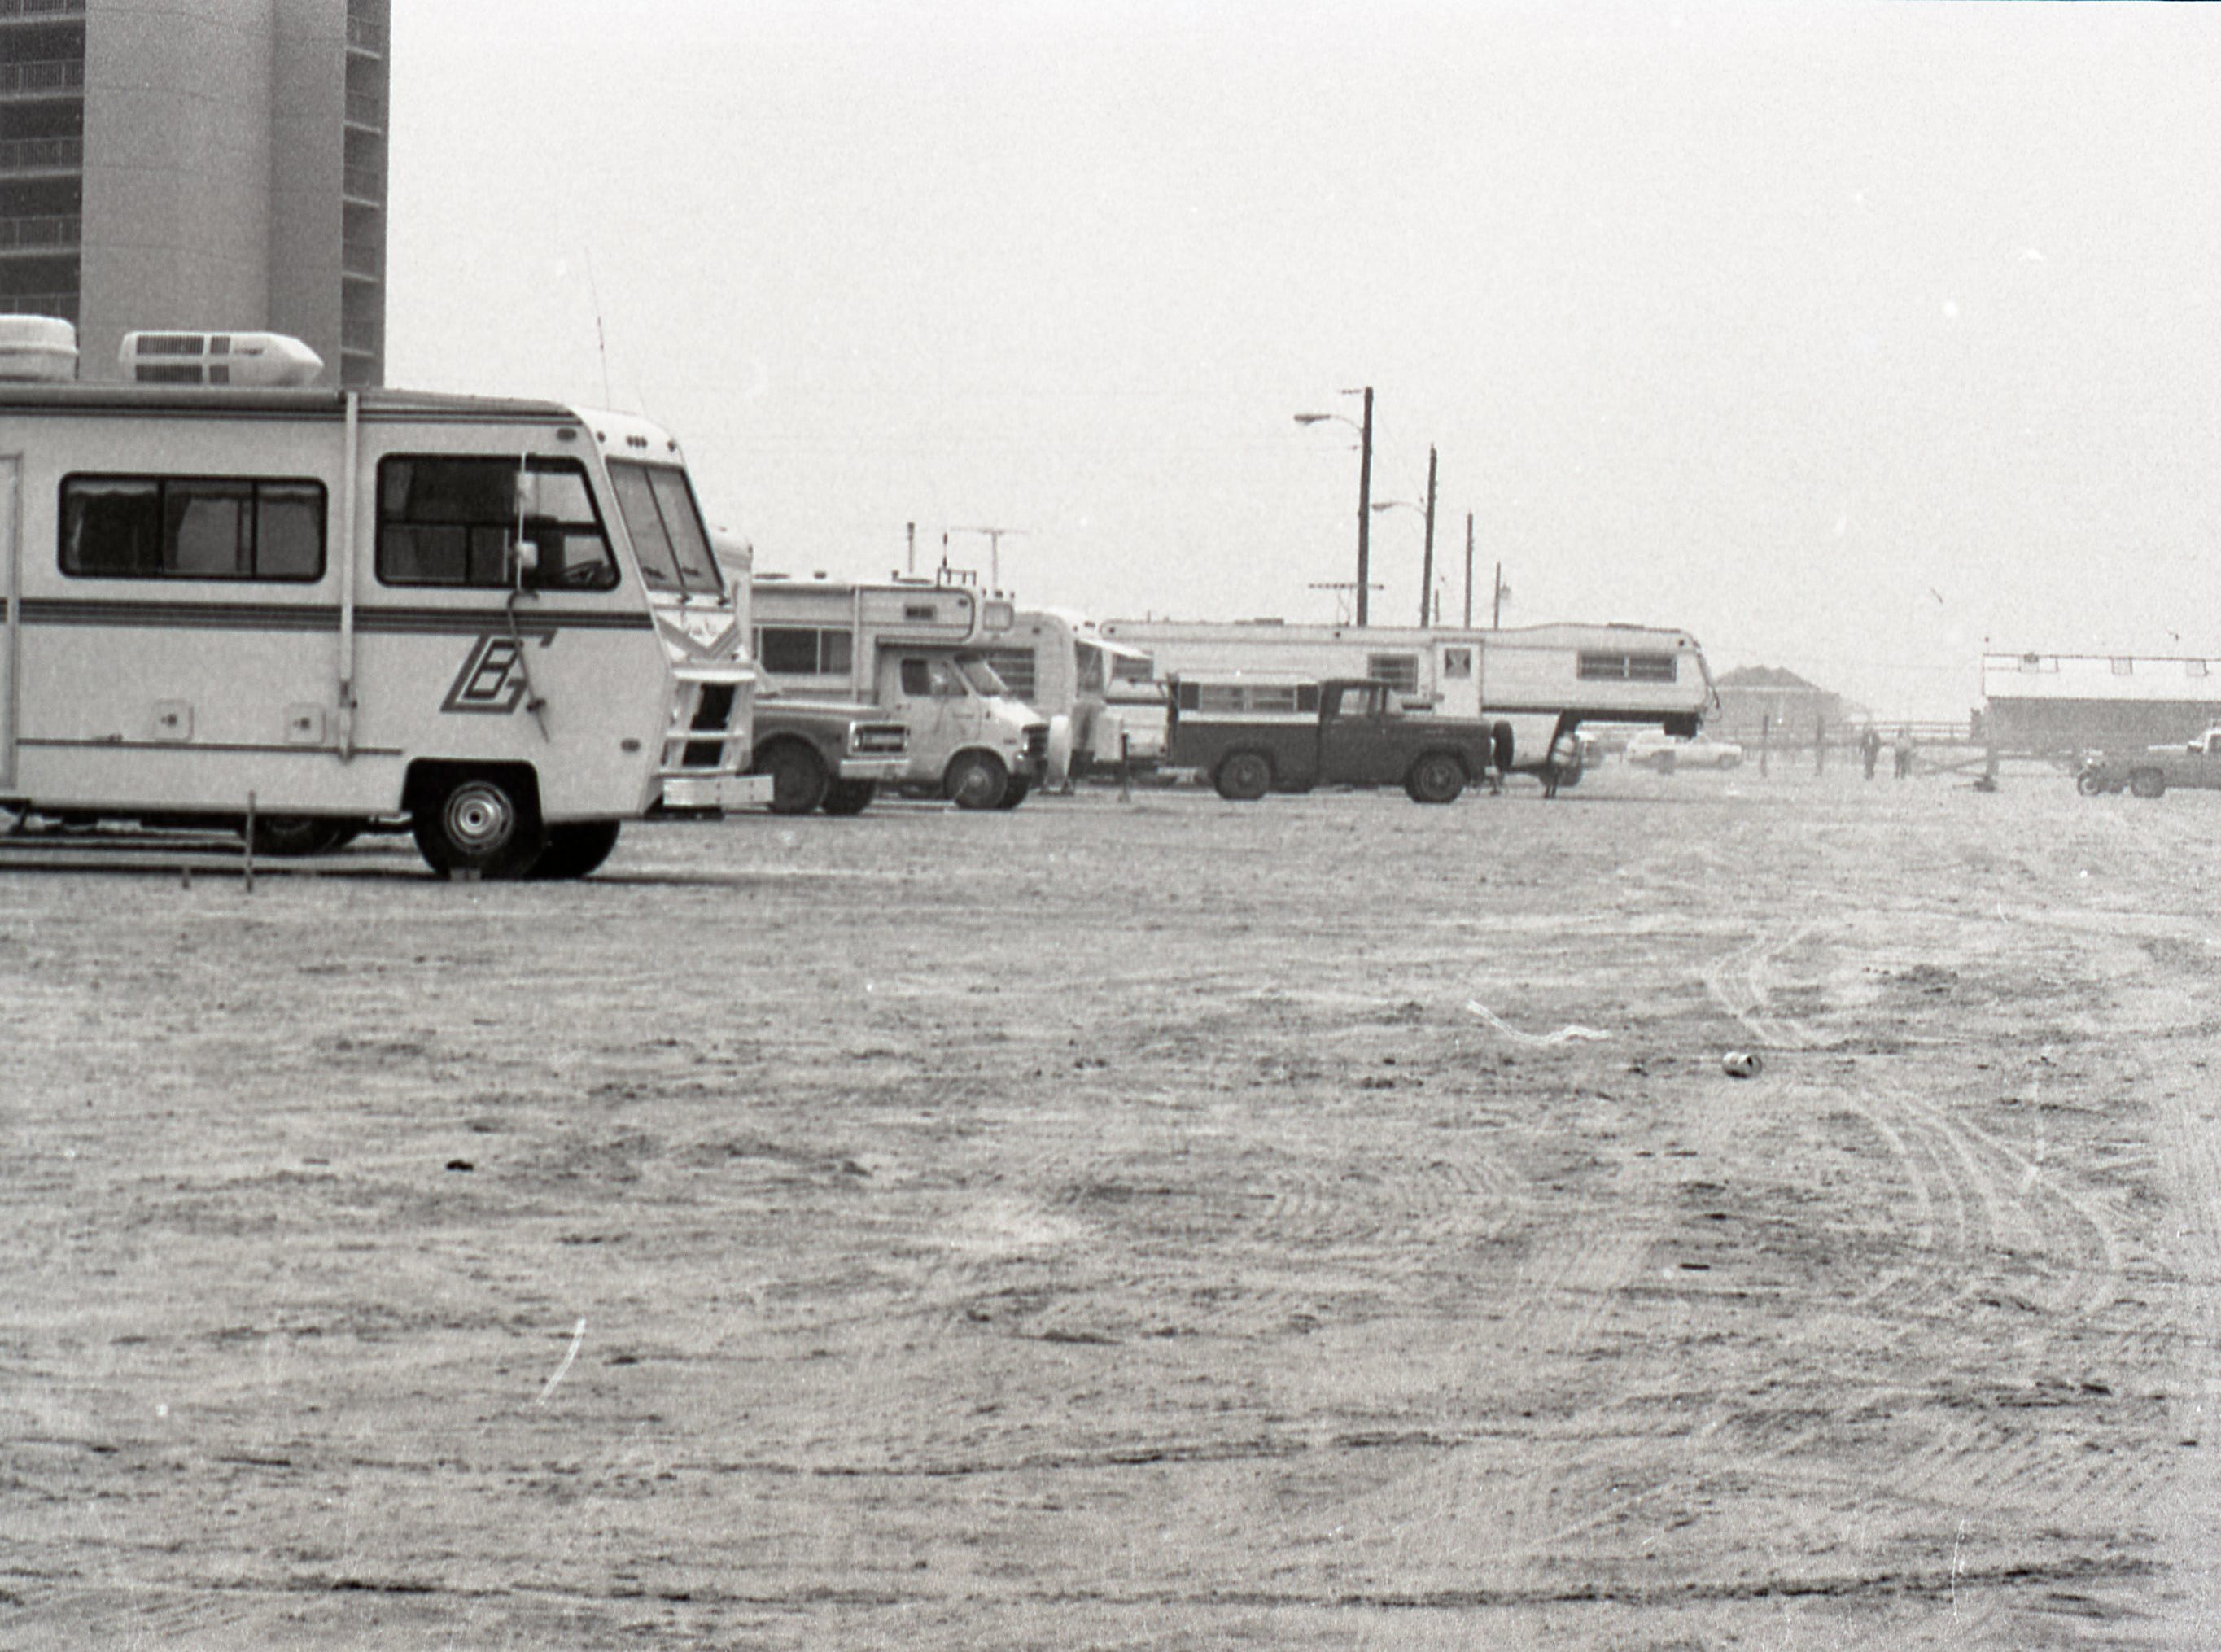 Campers and RVs along Mustang Island during spring break on March 17, 1979.